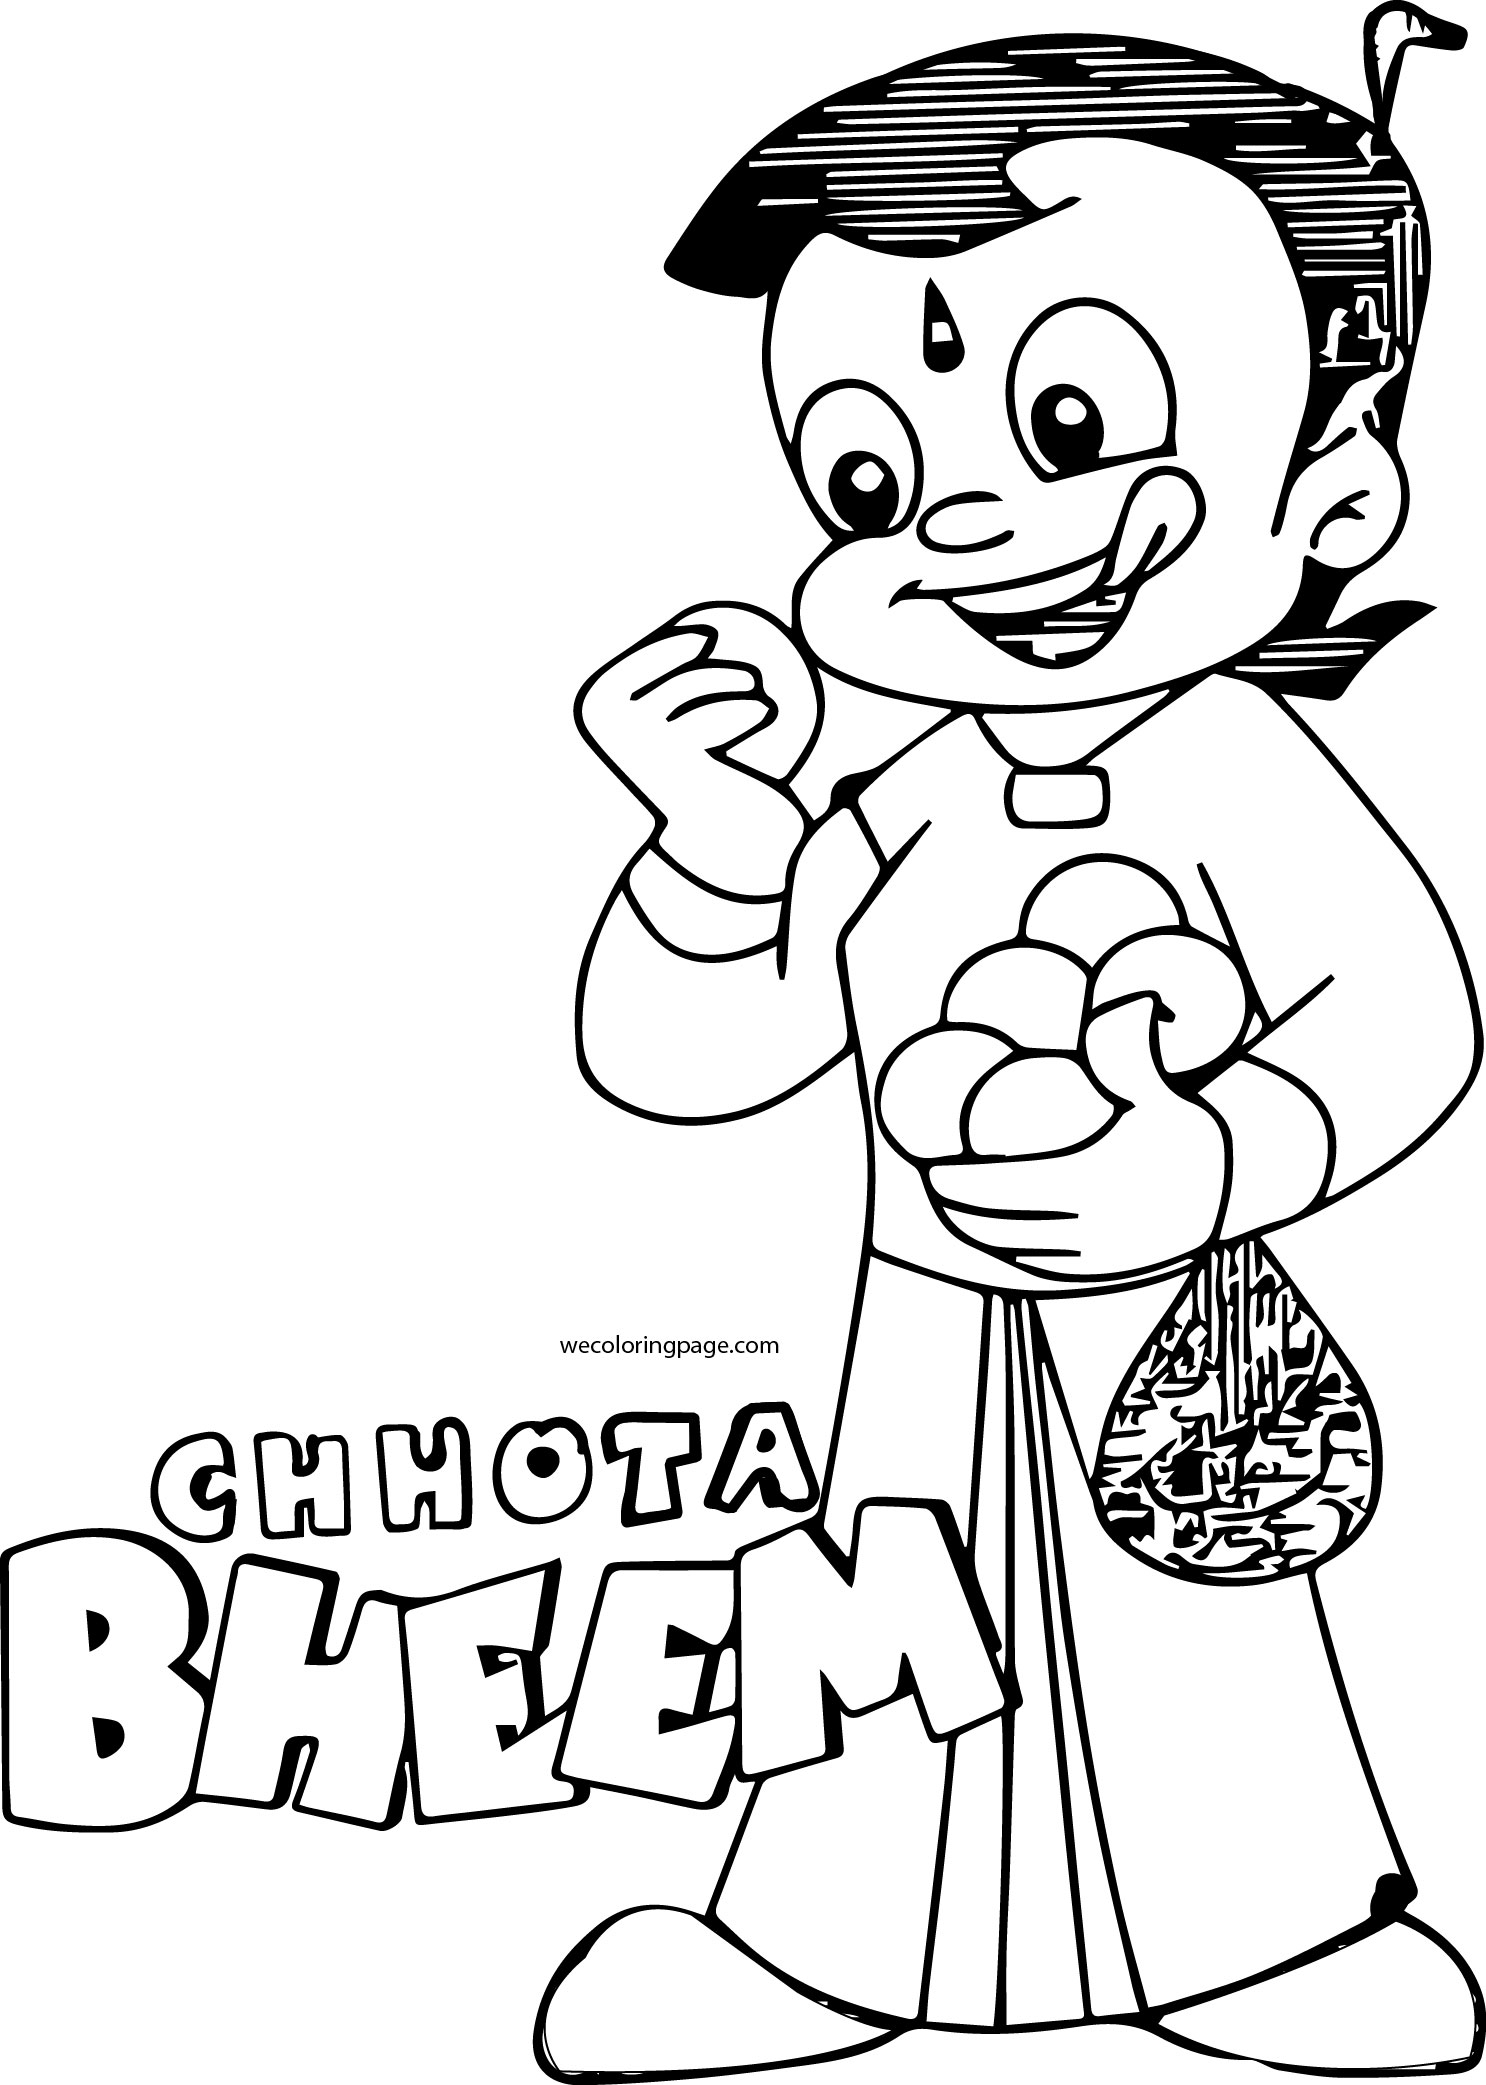 Chhota Bheem Eat Apple Coloring Page46